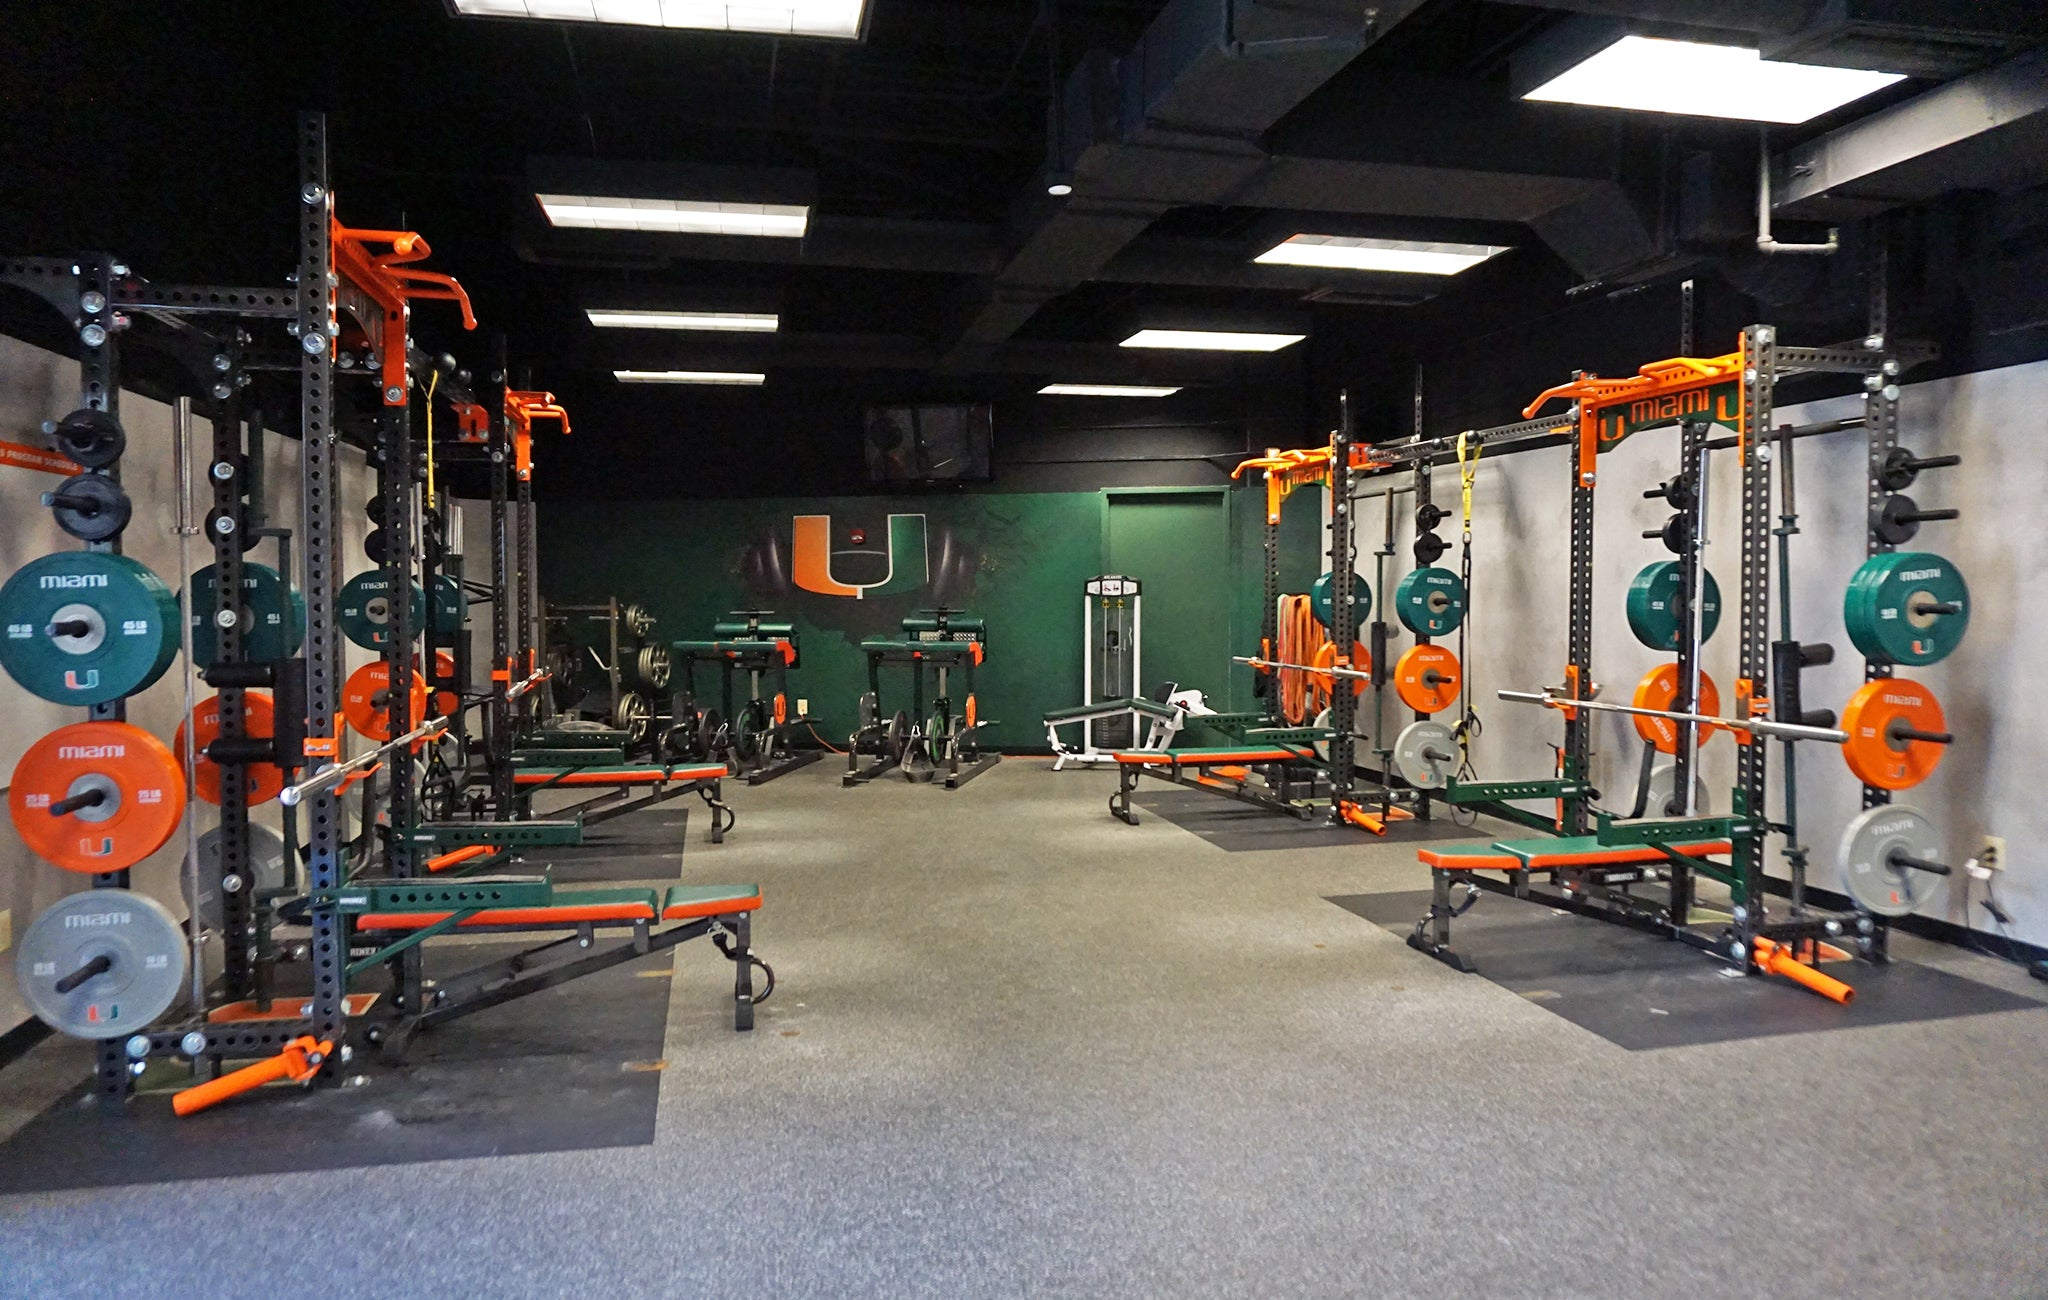 University of Miami basketball Weight Room